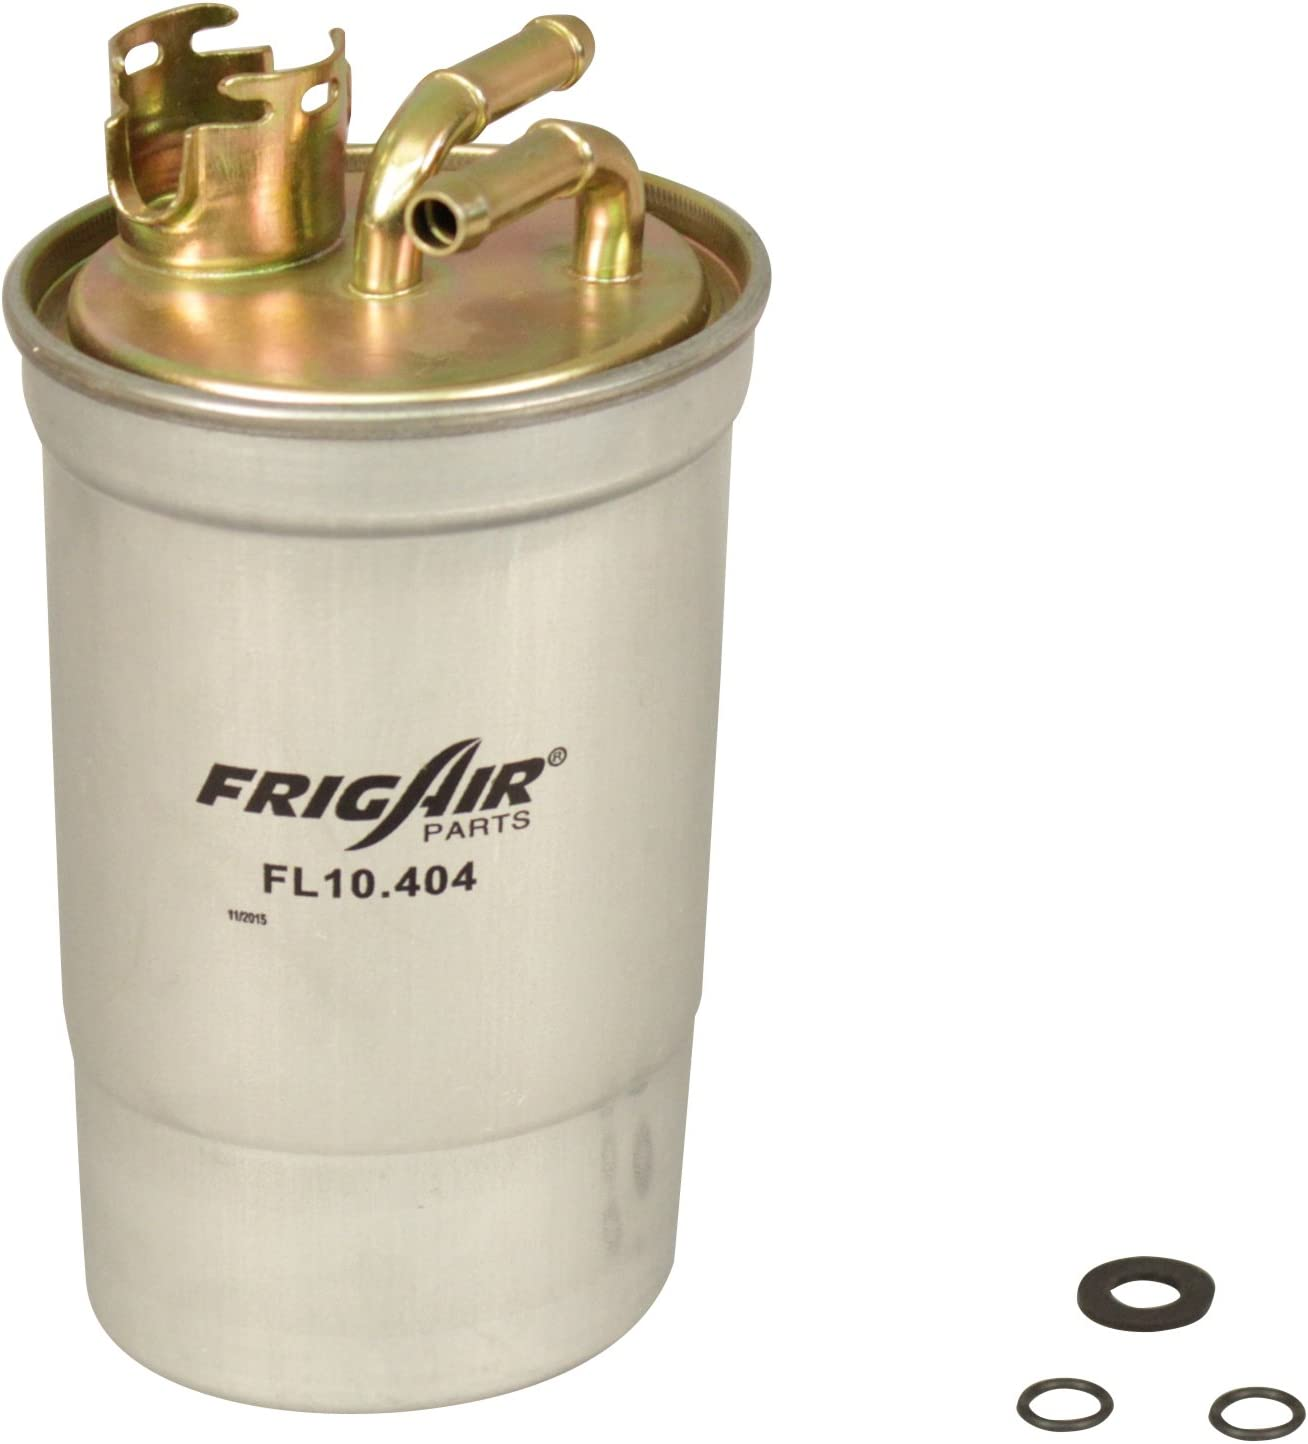 frigair fl10.404/ Fuel filter